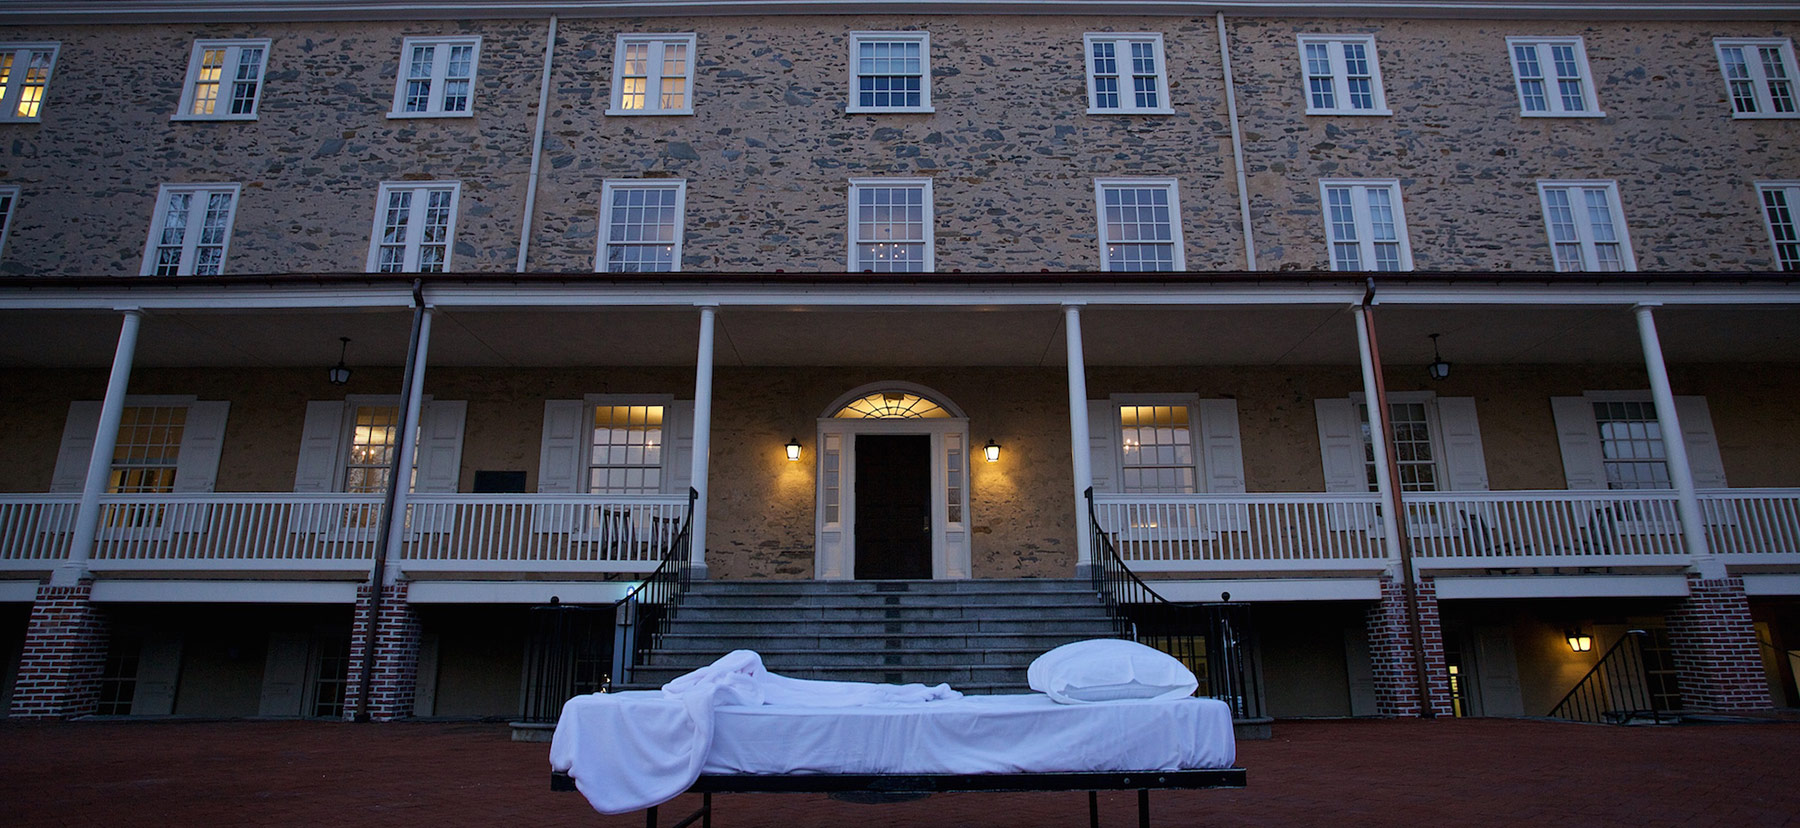 A student's bed in front of Founders Hall